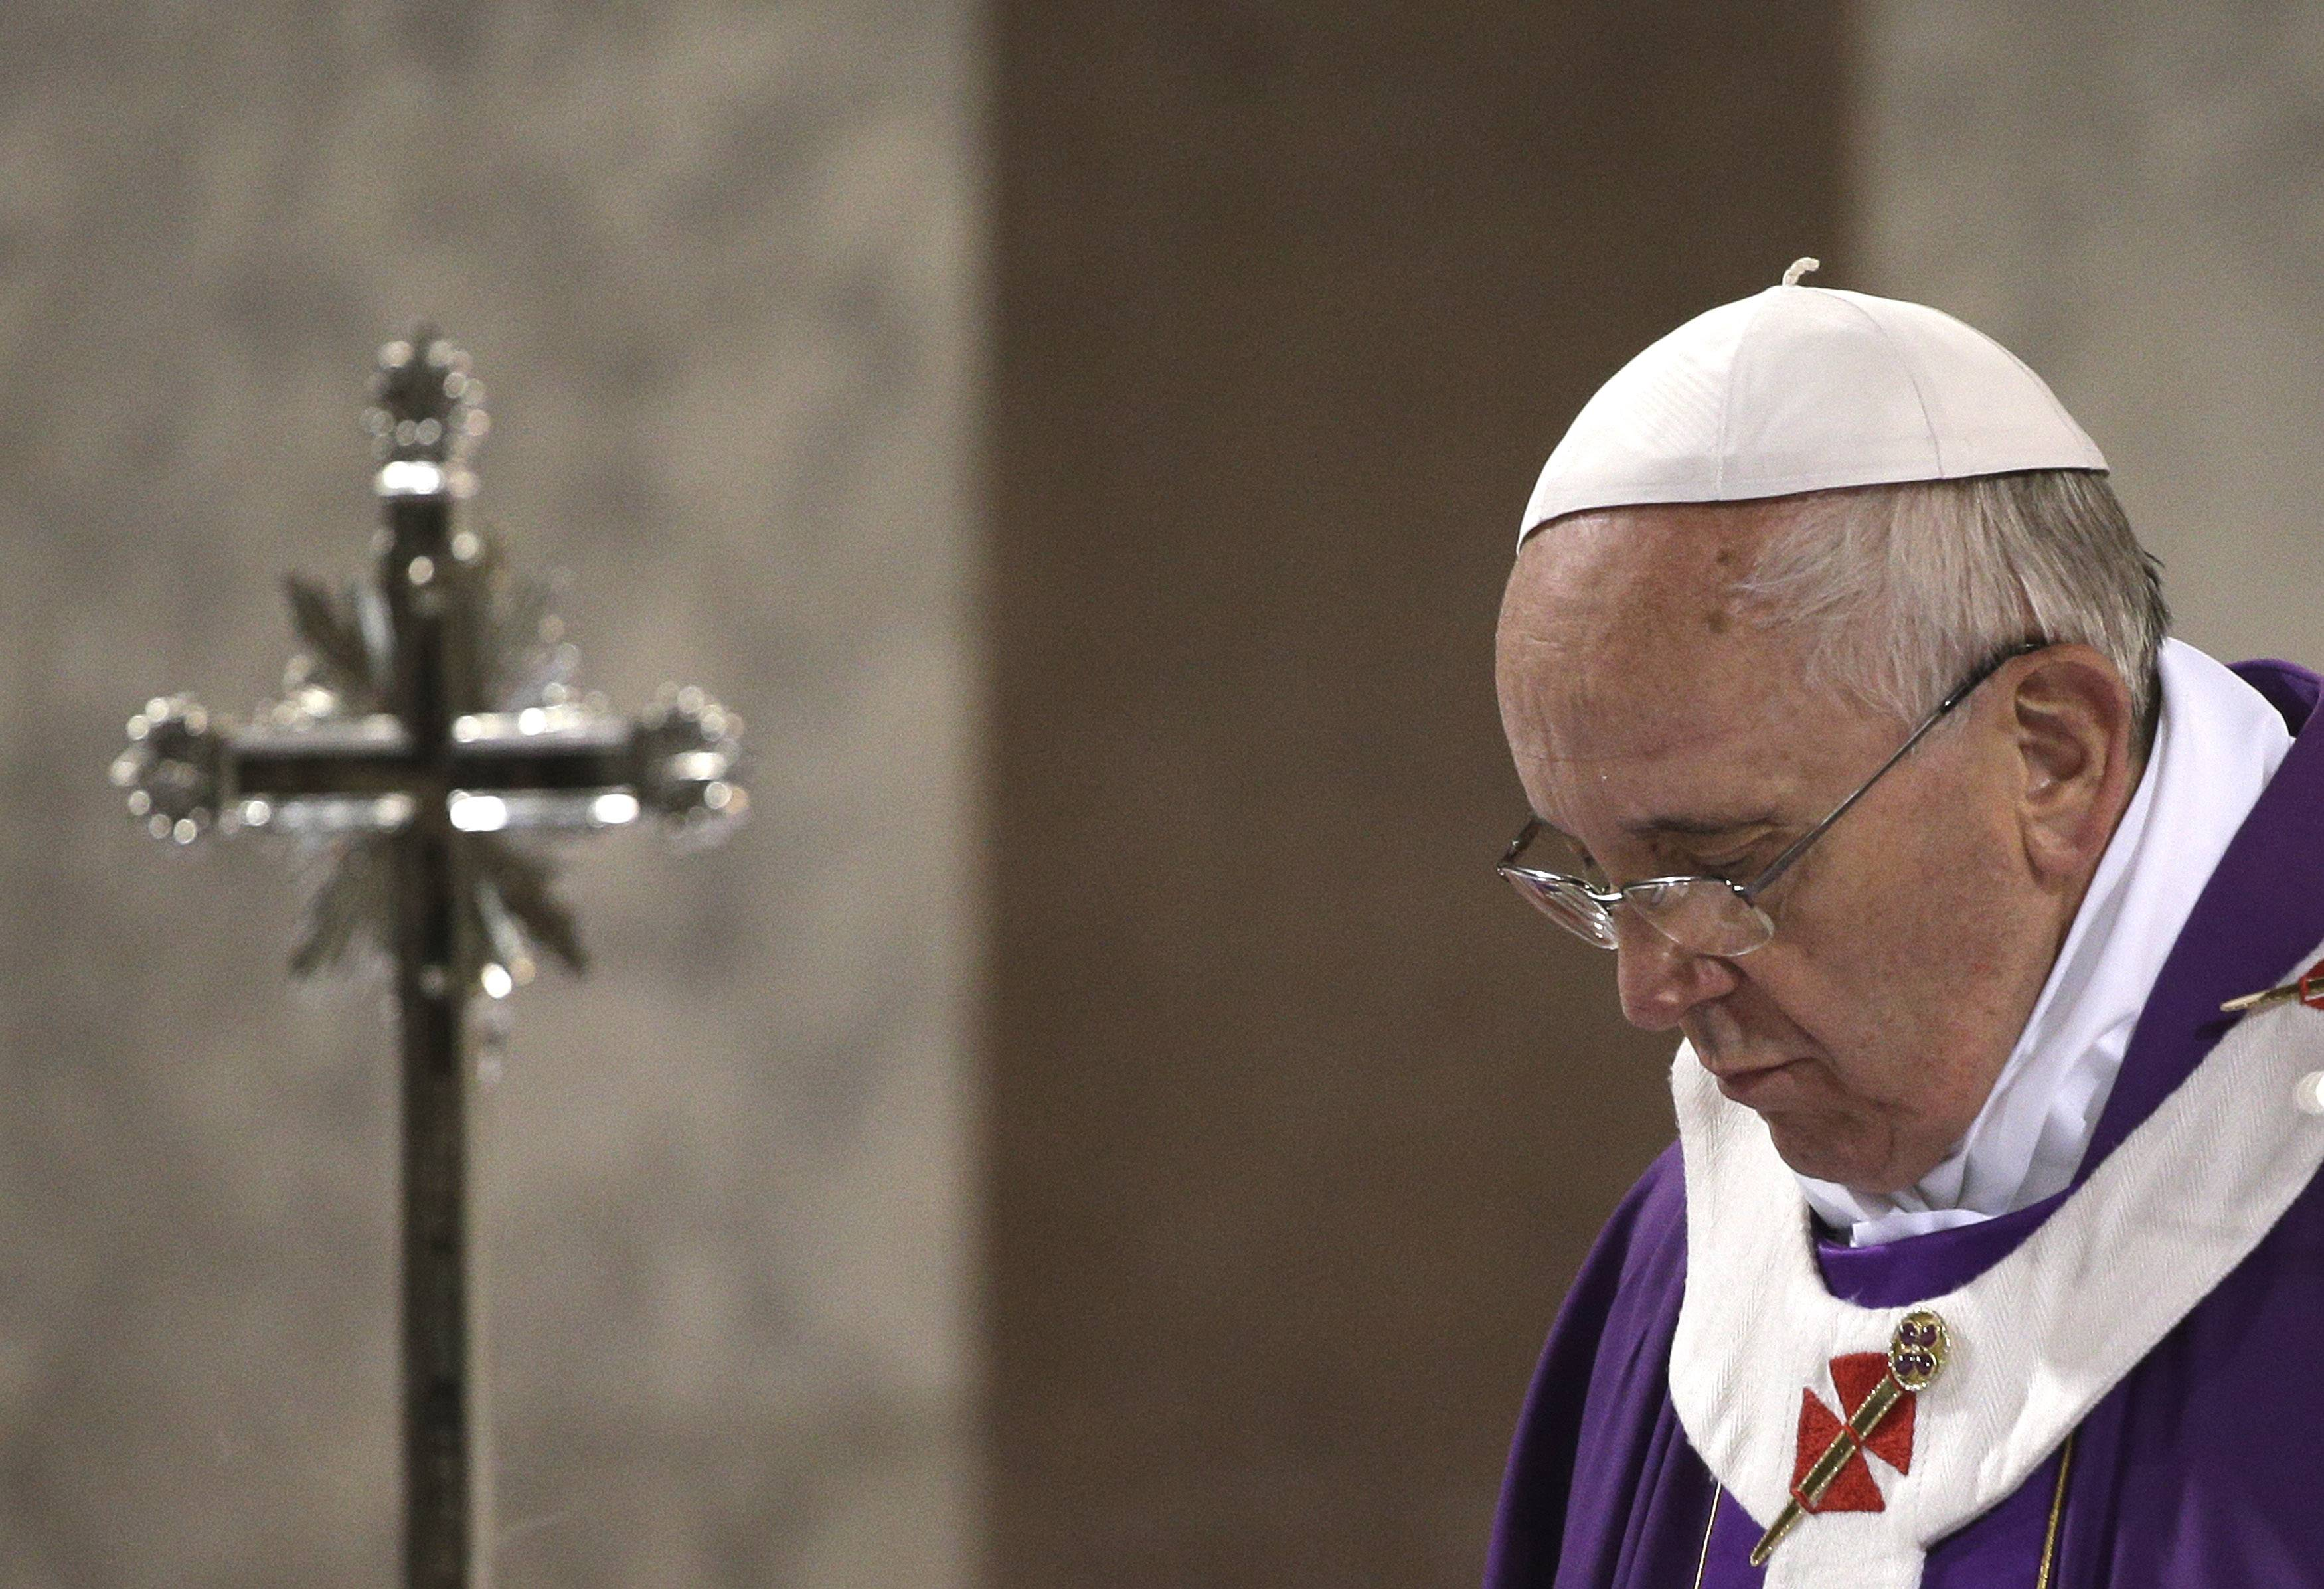 Pope Francis celebrates the Ash Wednesday mass at the Santa Sabina Basilica in Rome.